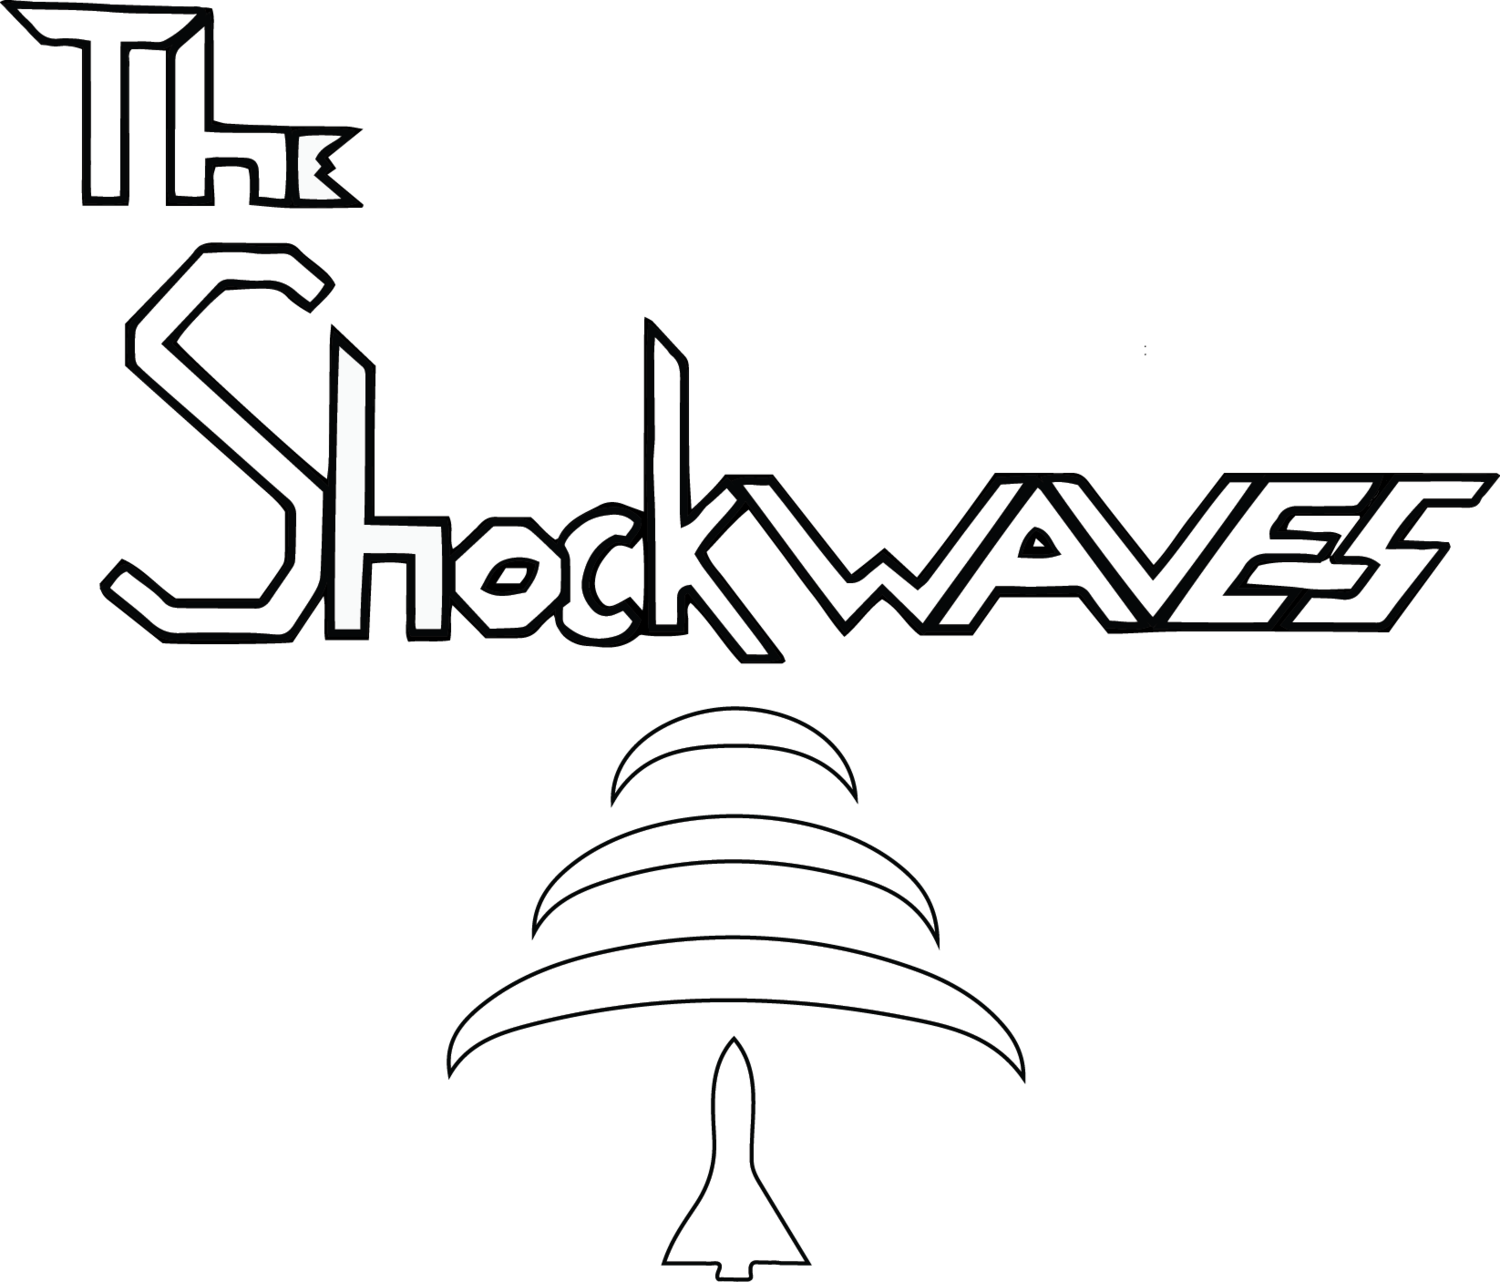 The Shockwaves